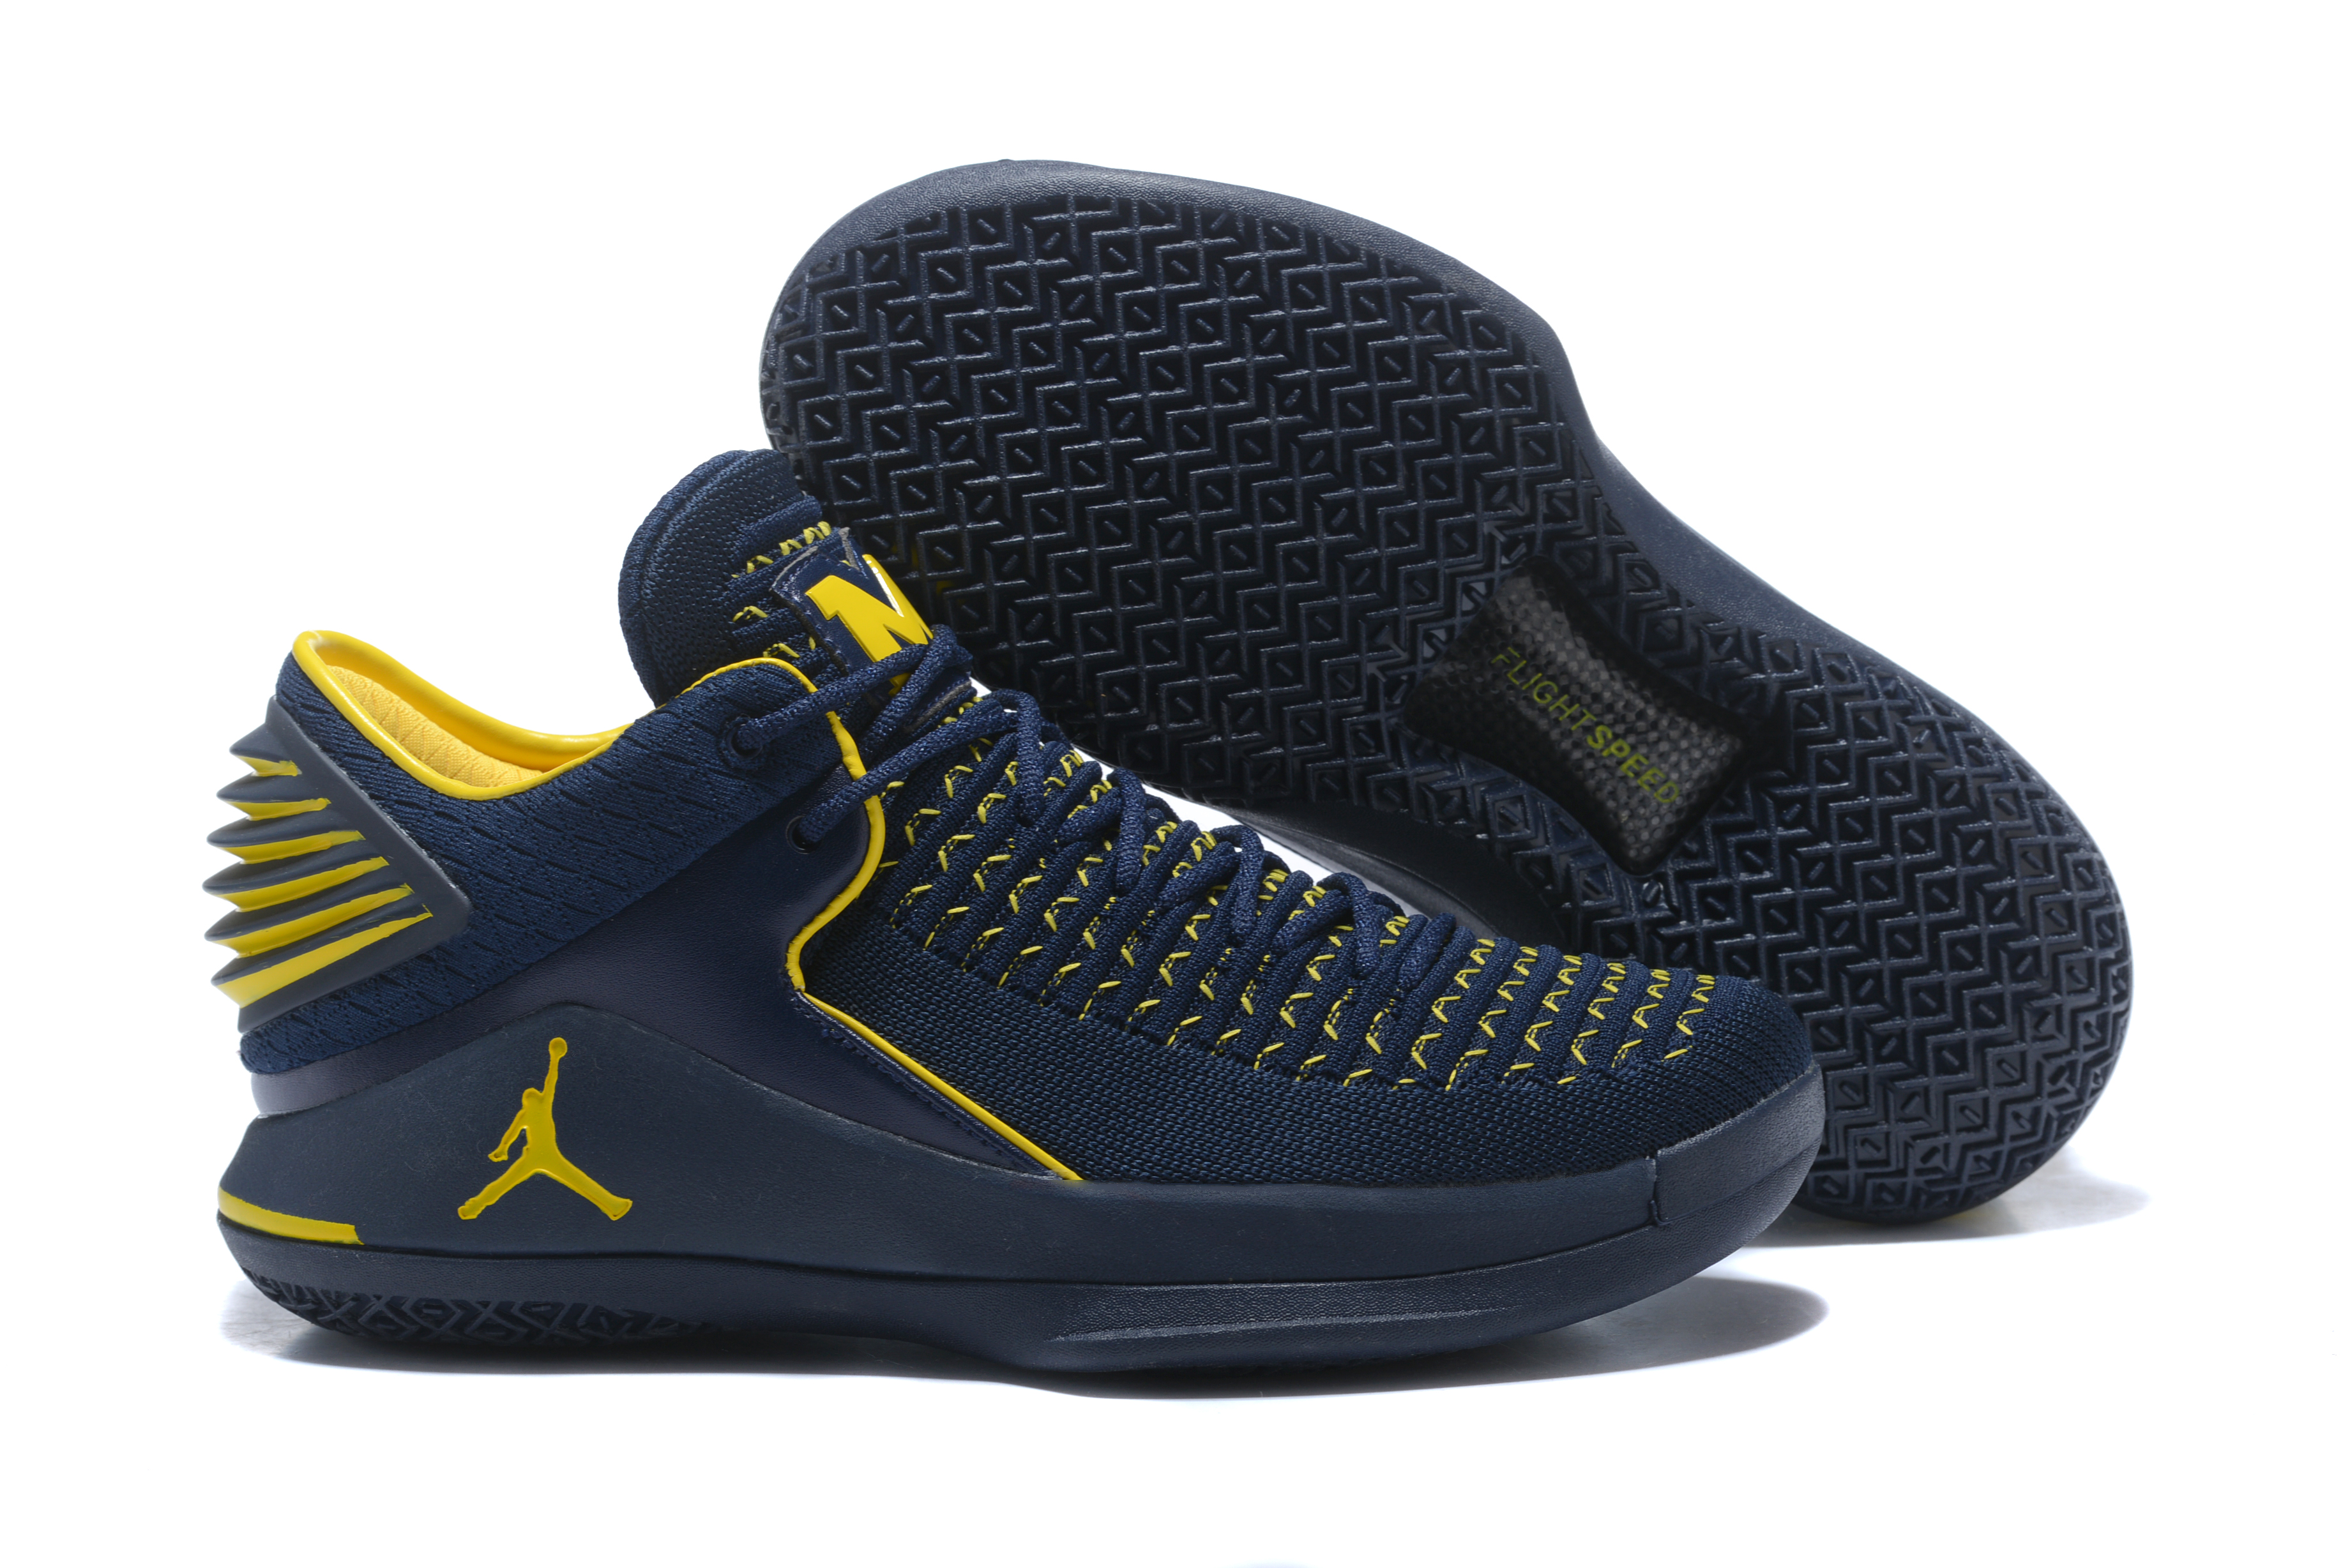 New Air Jordan 32 Michigan Basketball Shoes